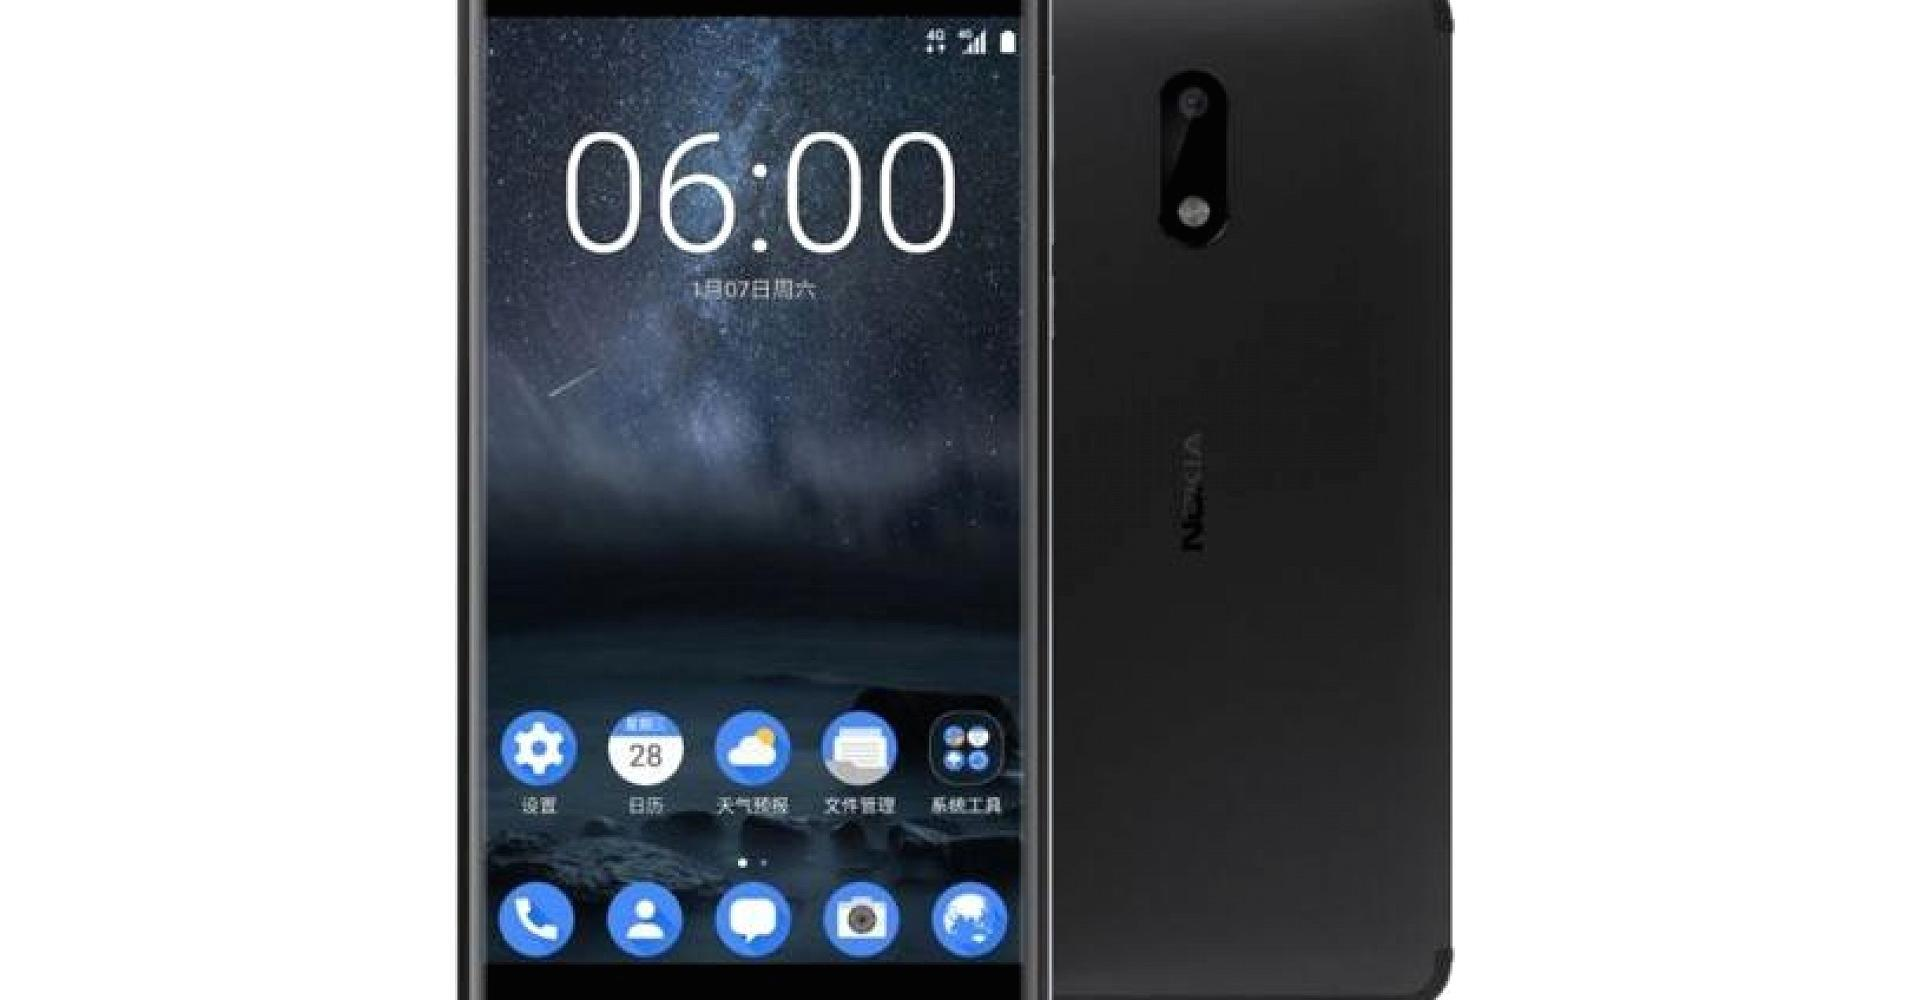 Nokia returns with an Android smartphone but you can't get it in the US